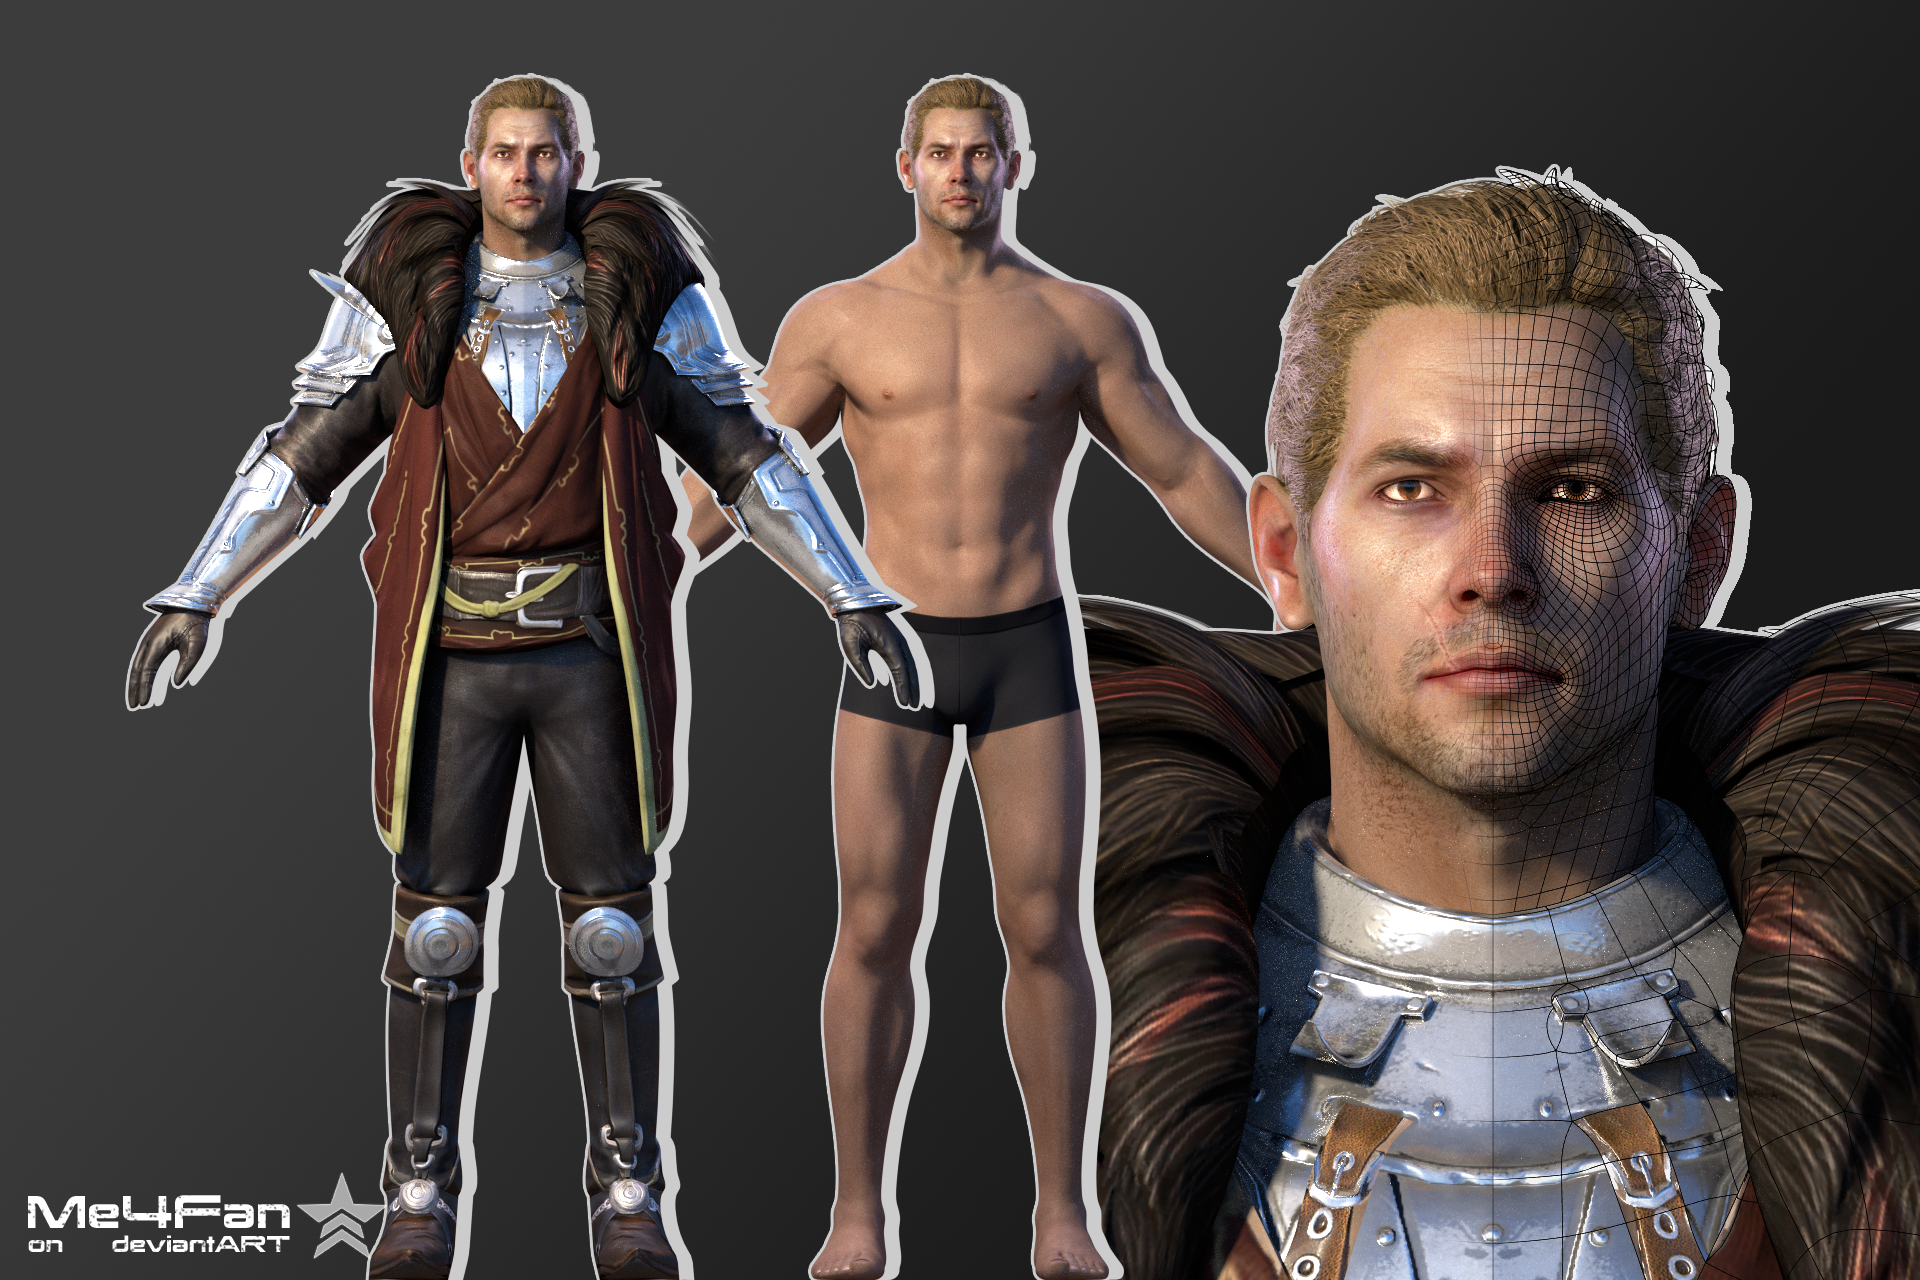 dai_cullen_rutherford__cycles__by_me4fan